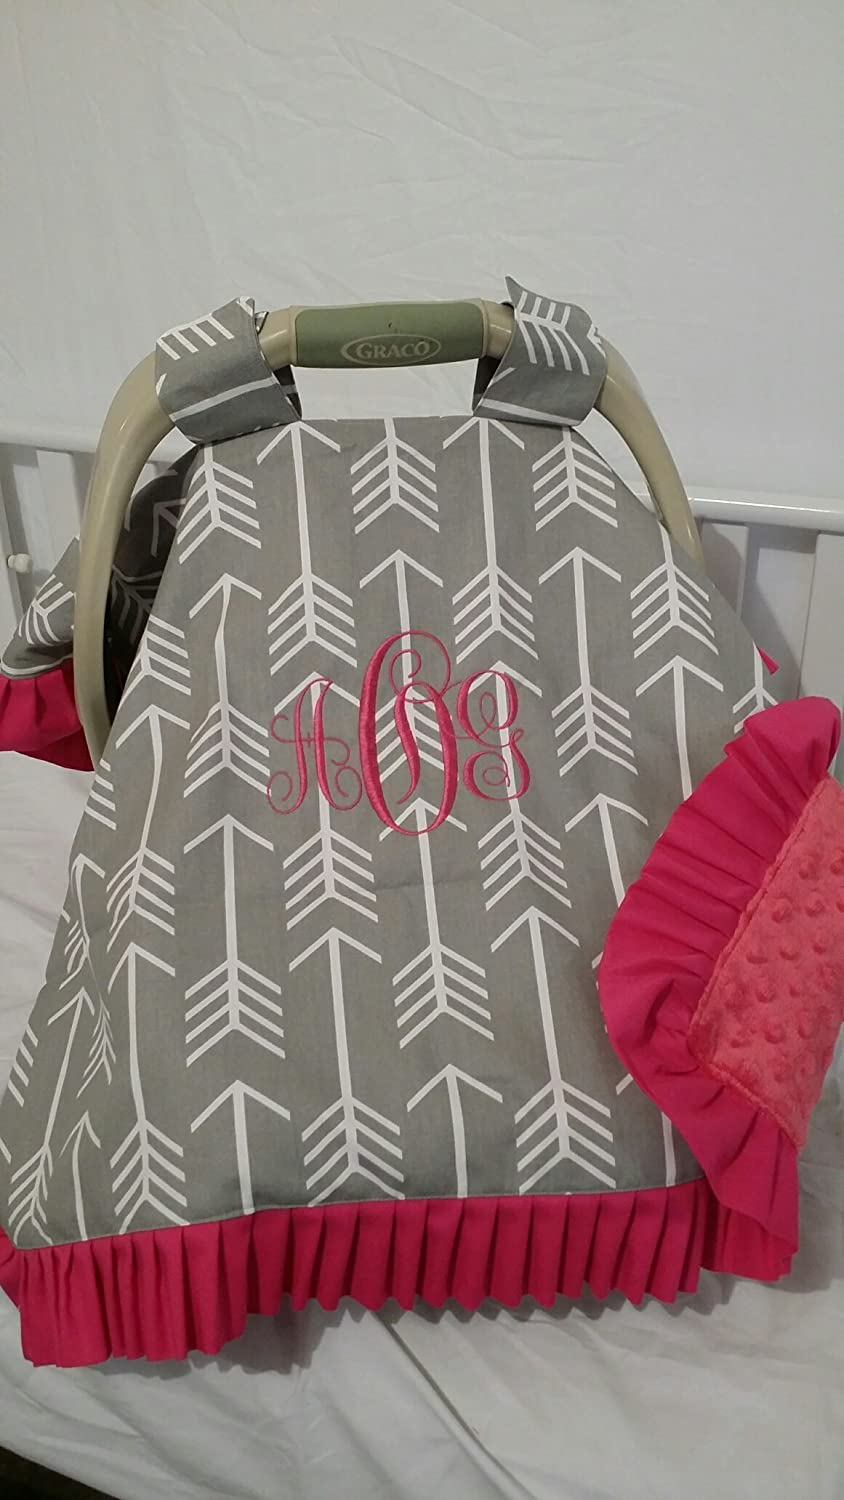 B019VG8R12 Car seat cover, canopy, Doubles as a blanket, Infant carrier cover, handle straps Embroidered, personalized, monogrammed, Any theme, Protect your baby from weather and sickness 81xPx8FSzsL